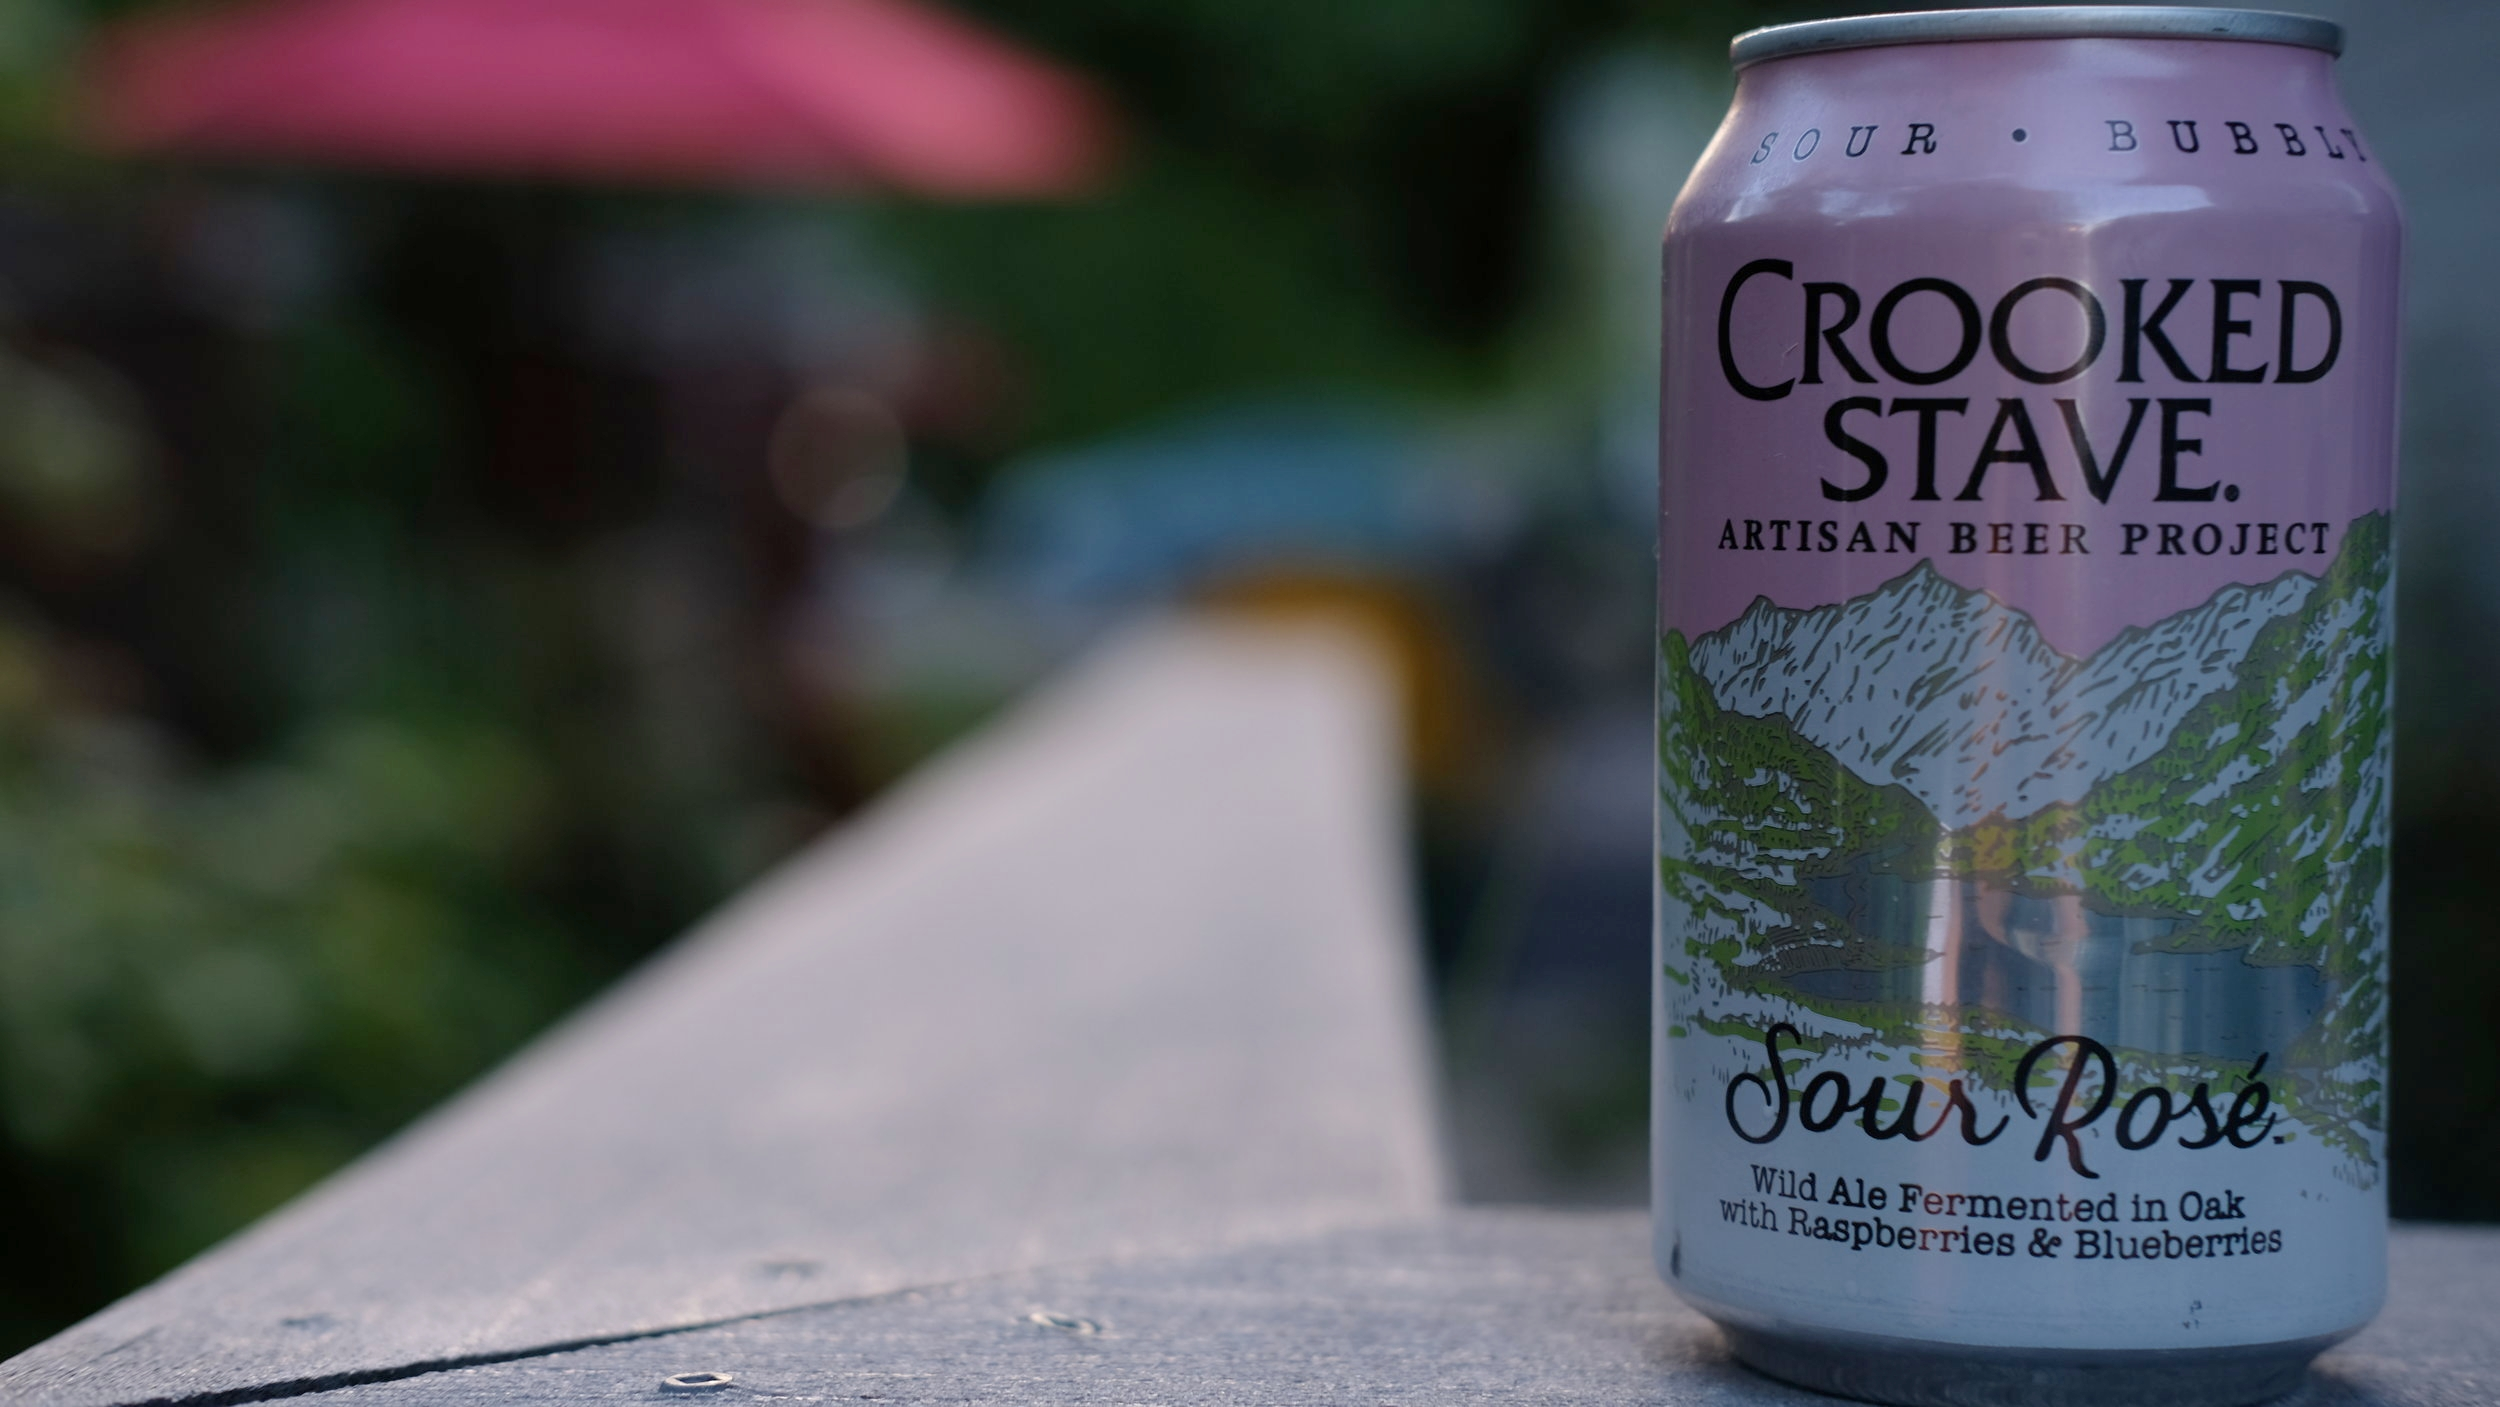 Crooked Stave's Sour Rosé is a mixed culture wild ale fermented in oak with raspberries and blueberries.